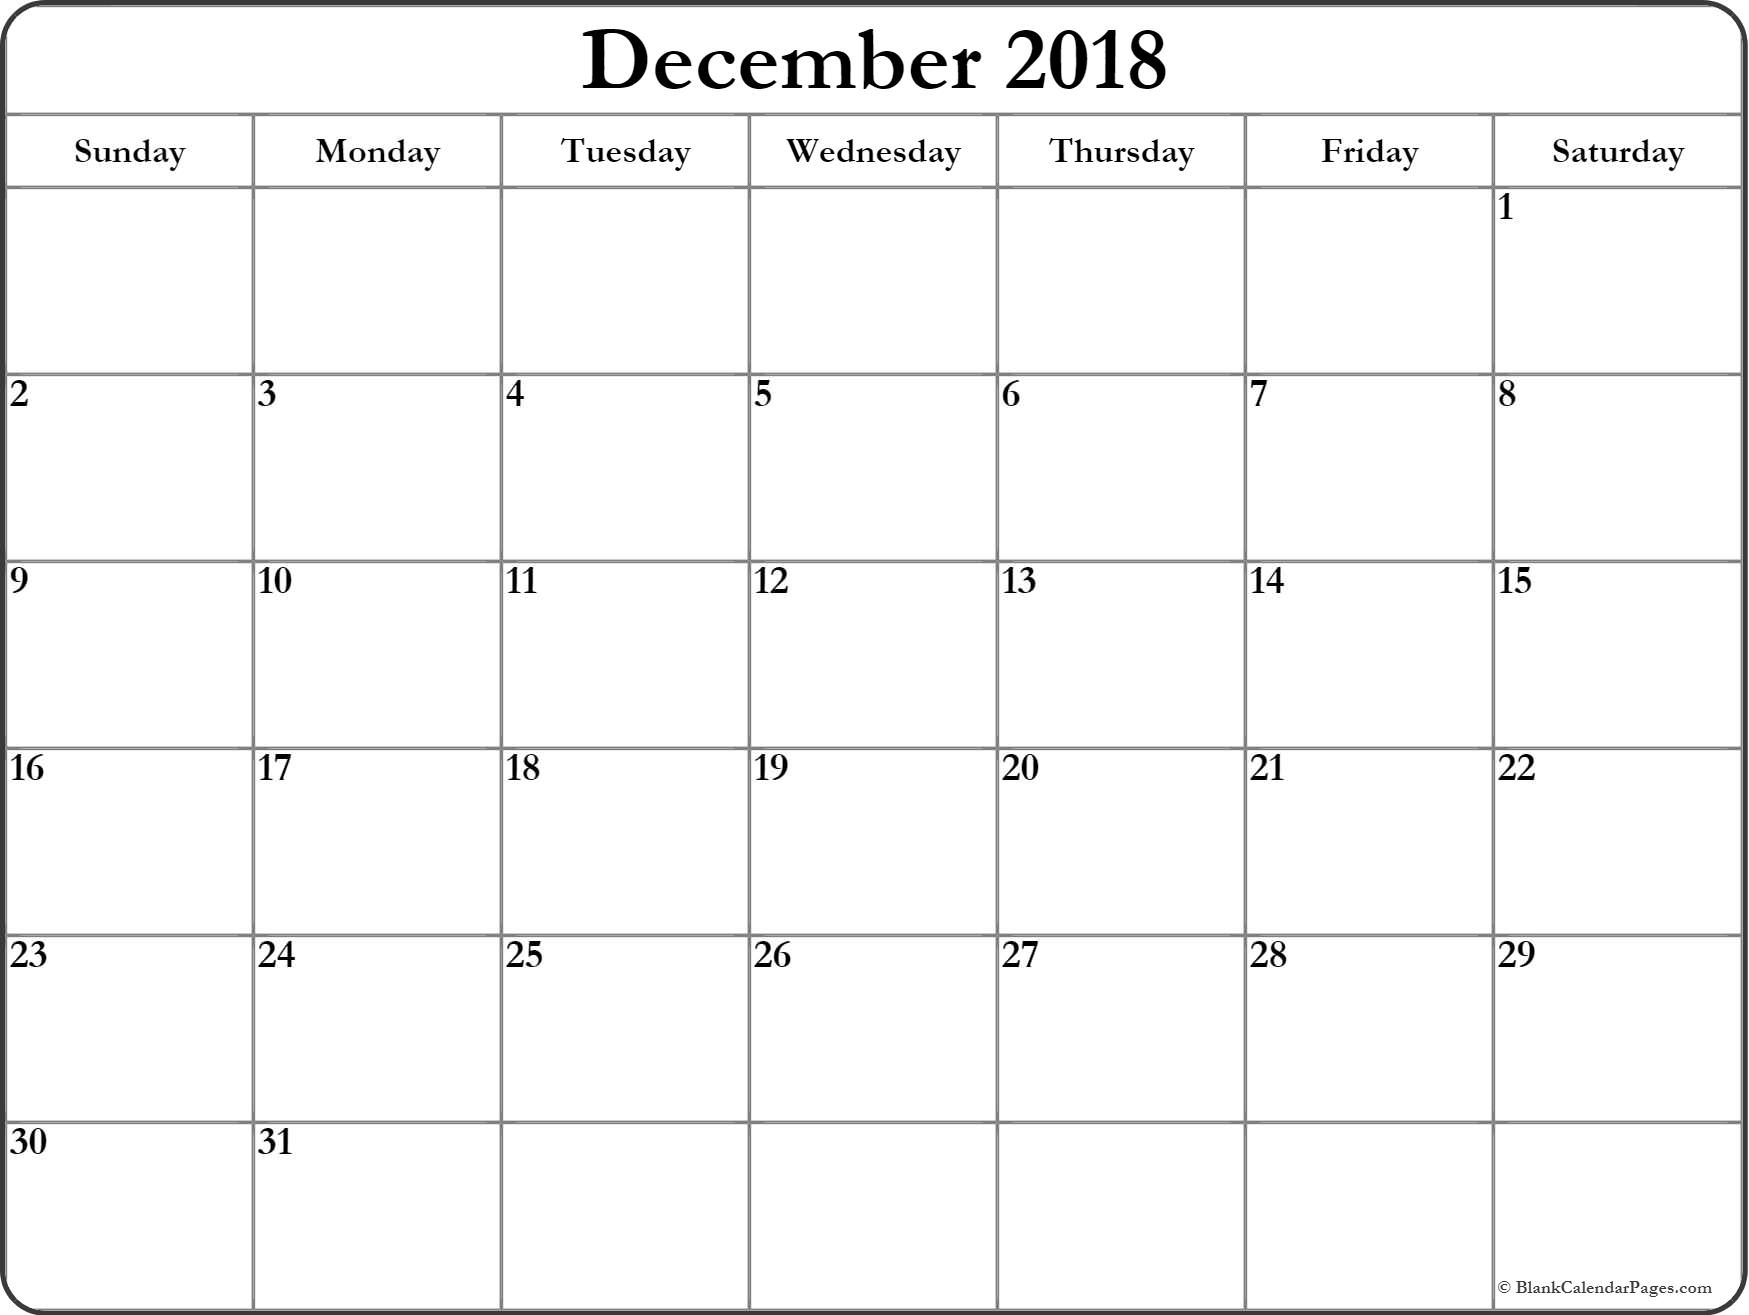 Best} Free* Blank December 2018 Calendar Templates Printable With Notes within Blank Writable Calendar Template Large December Calendar Com